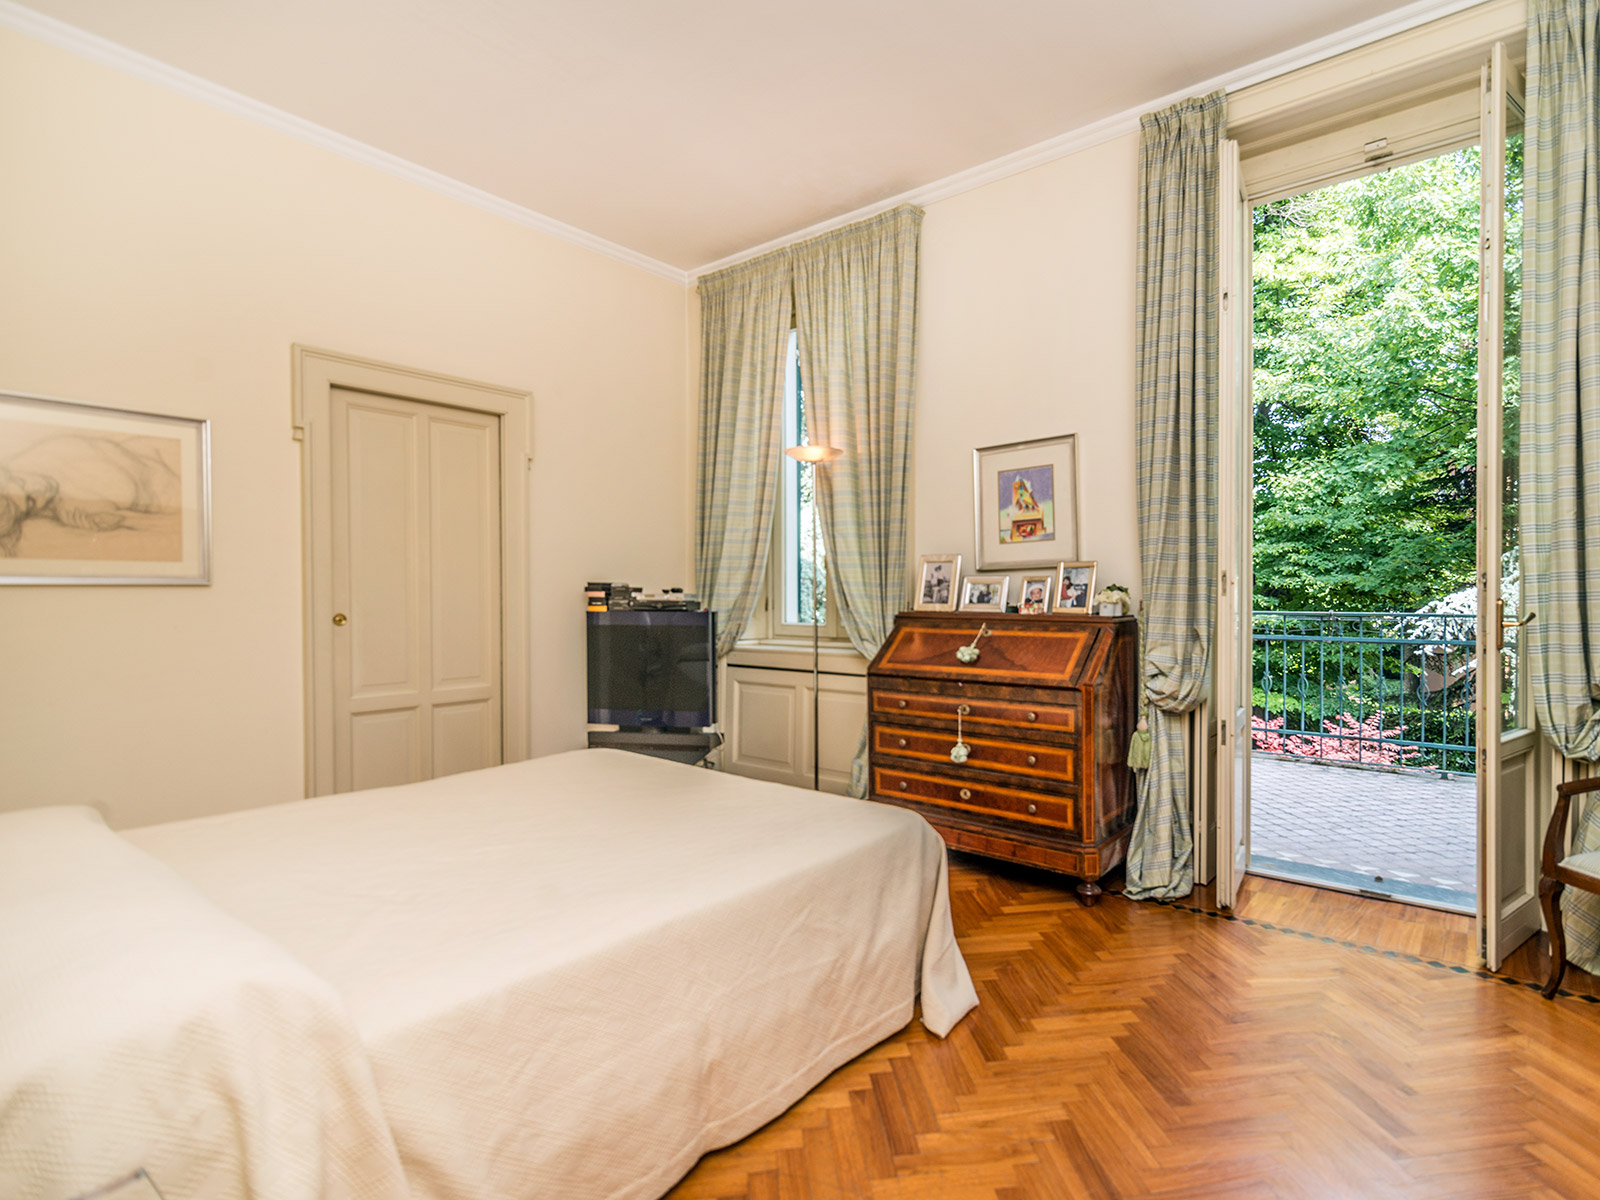 Additional photo for property listing at Elegant three story Art Nouveau villa Piazza Amendola Milano, Milan 20145 Italie